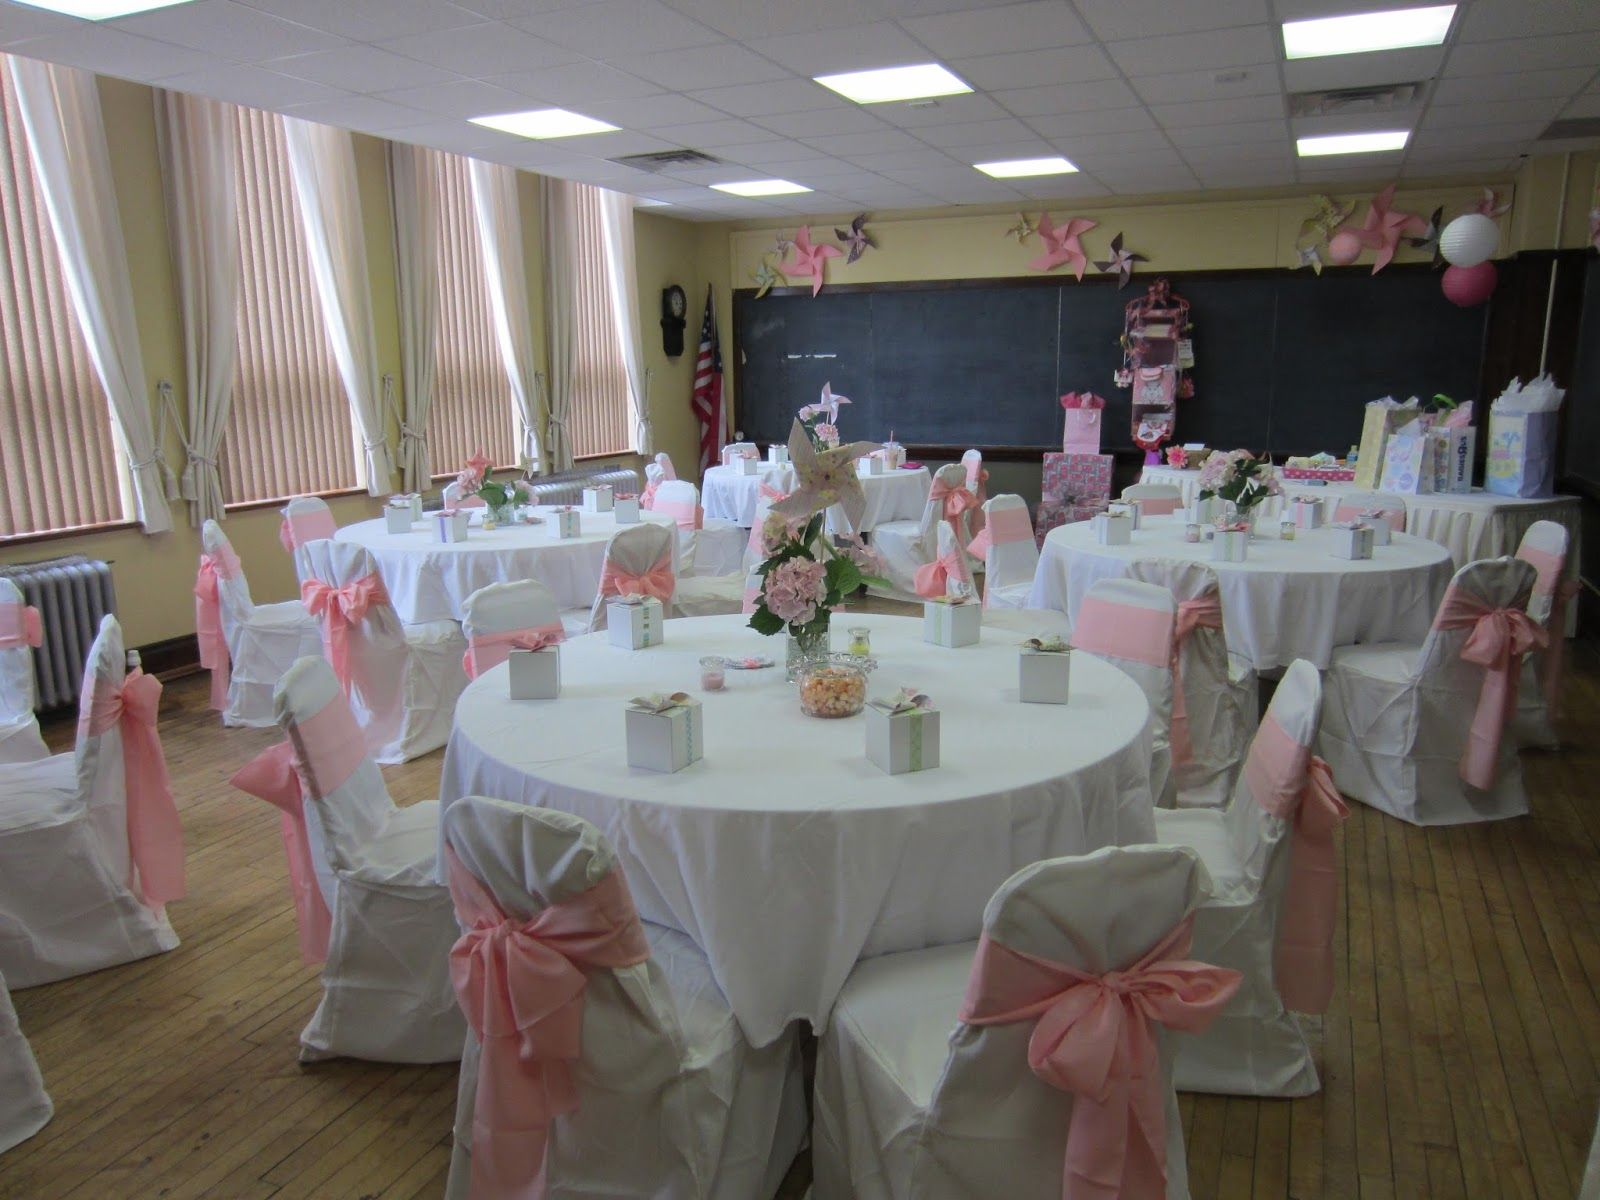 Chair Cover Rentals Hartford Ct Covers For Armchair Baby Shower Table Rental Letter